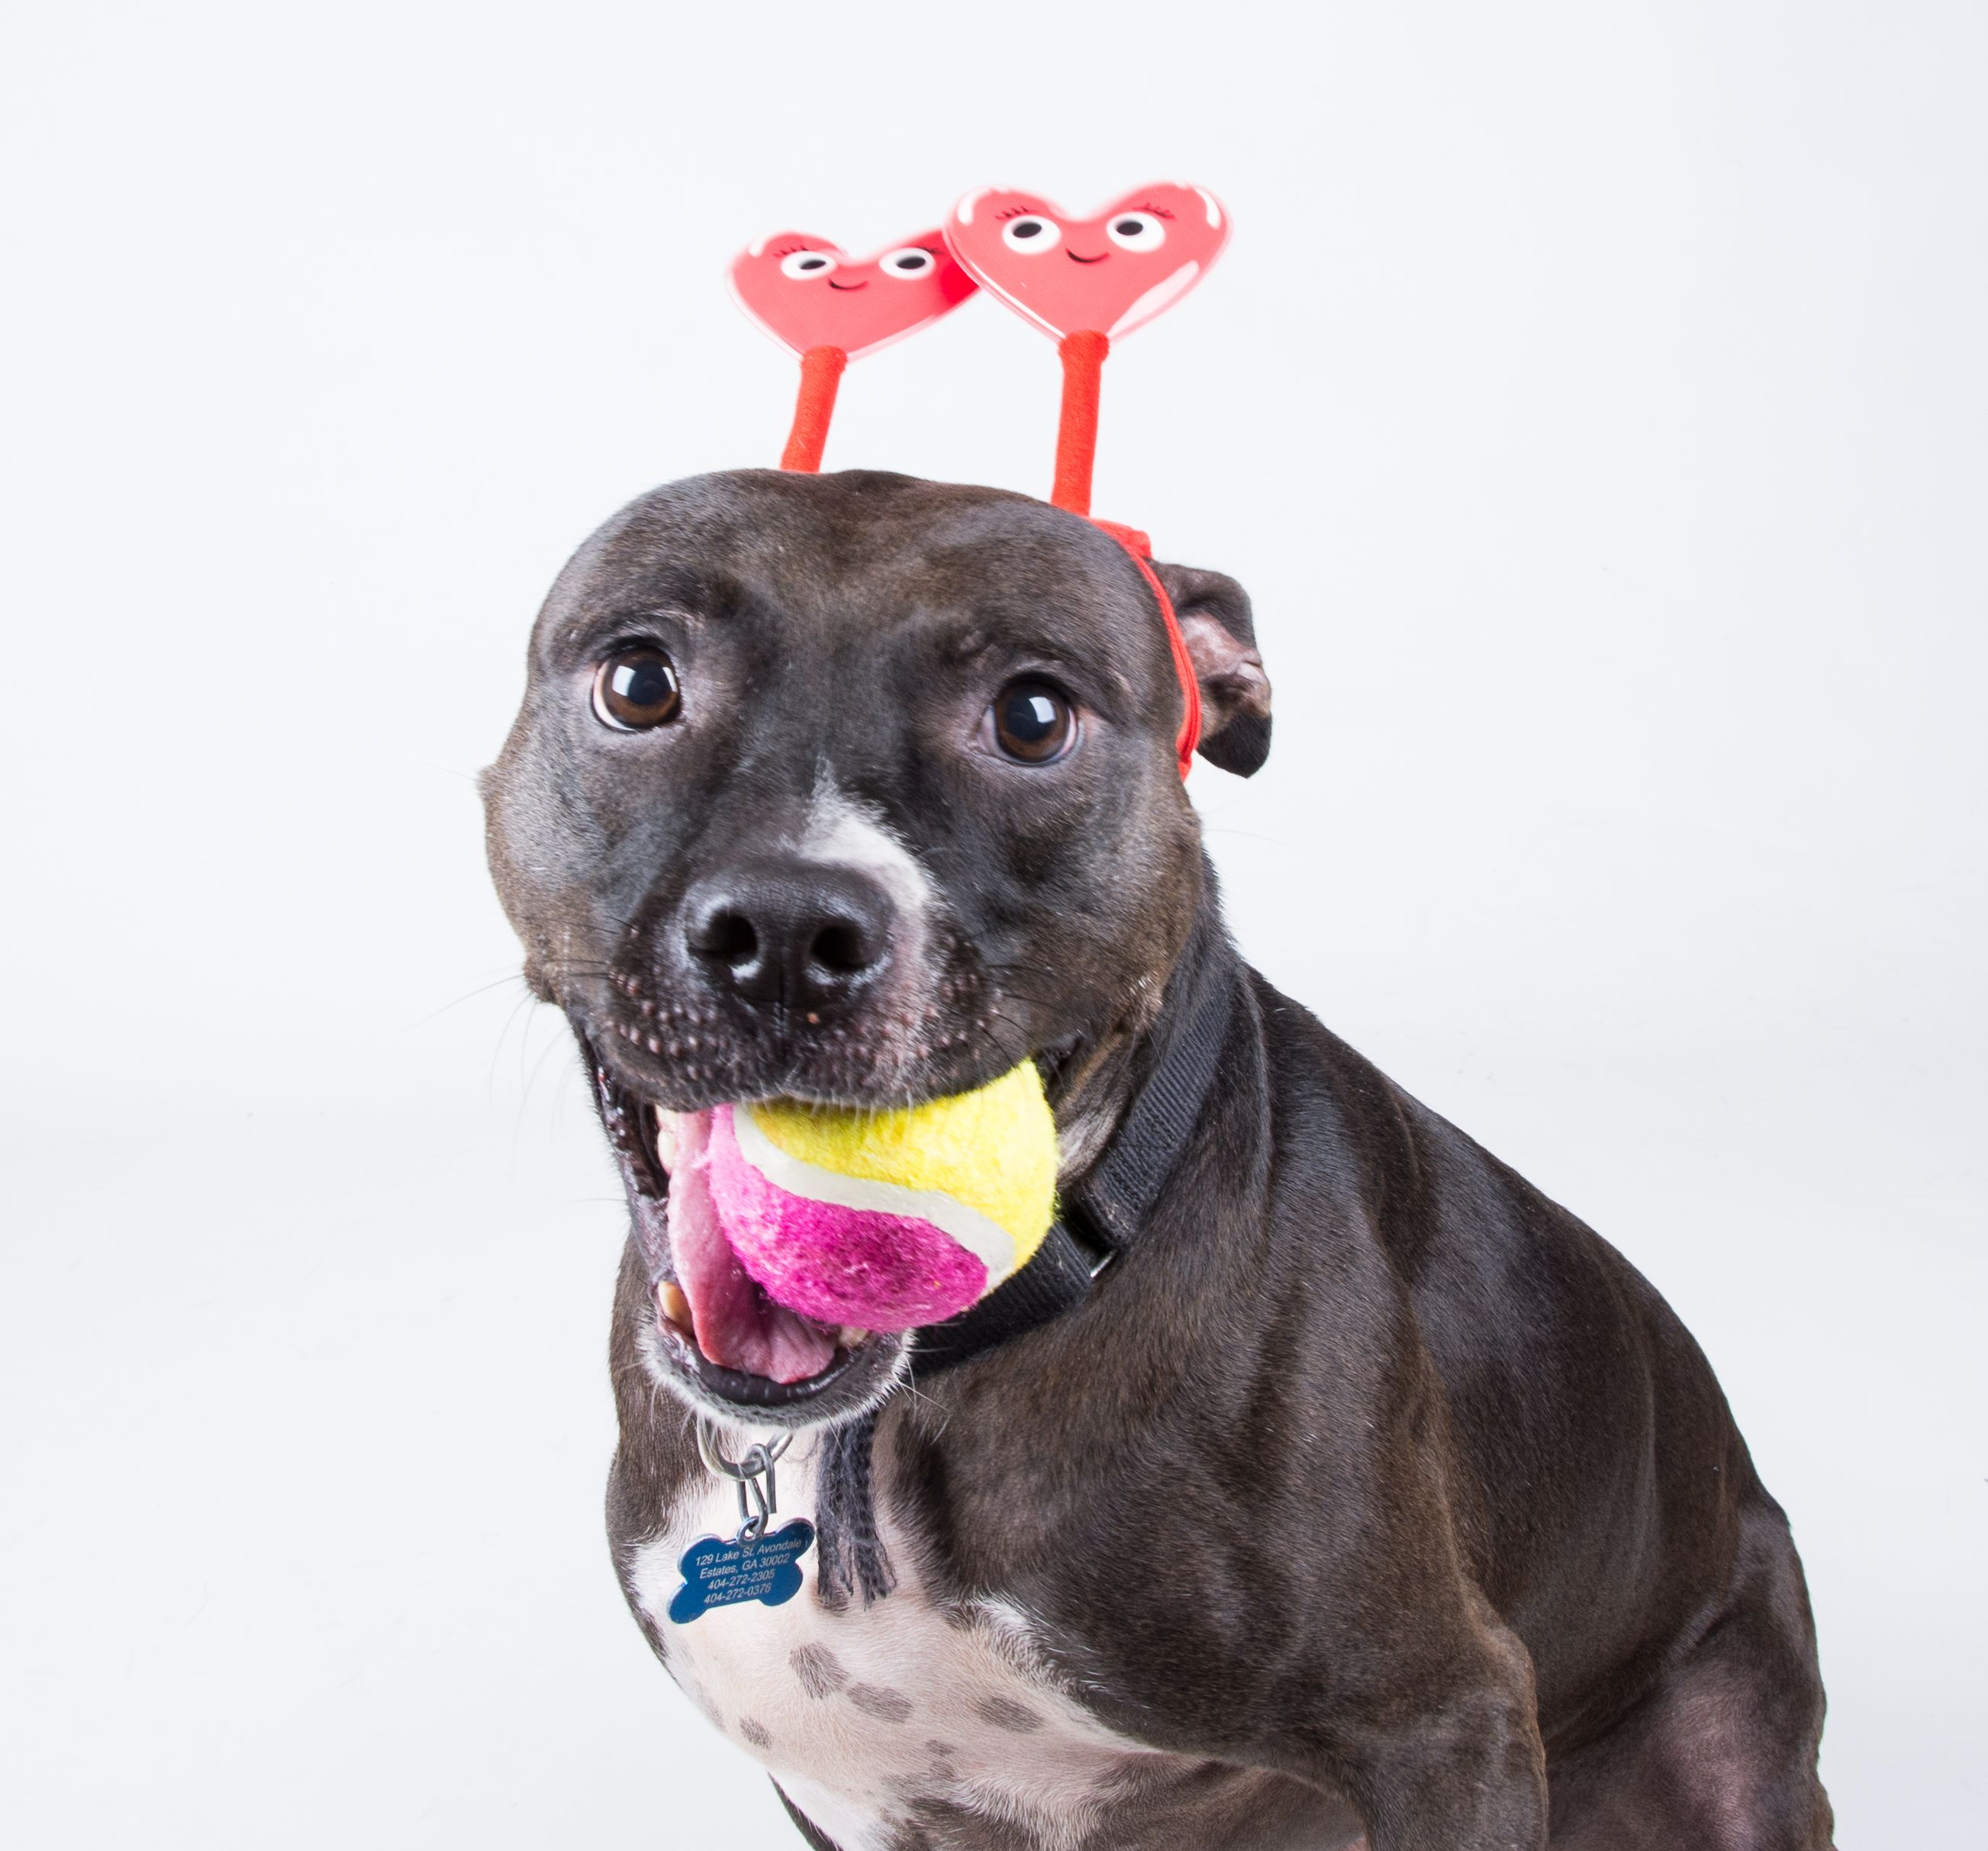 Love and tennis balls, that is Samantha's motto! This LifeLine staff favorite is ready to join you wherever you go. If you are looking for a sidekick, look no further than Samantha!